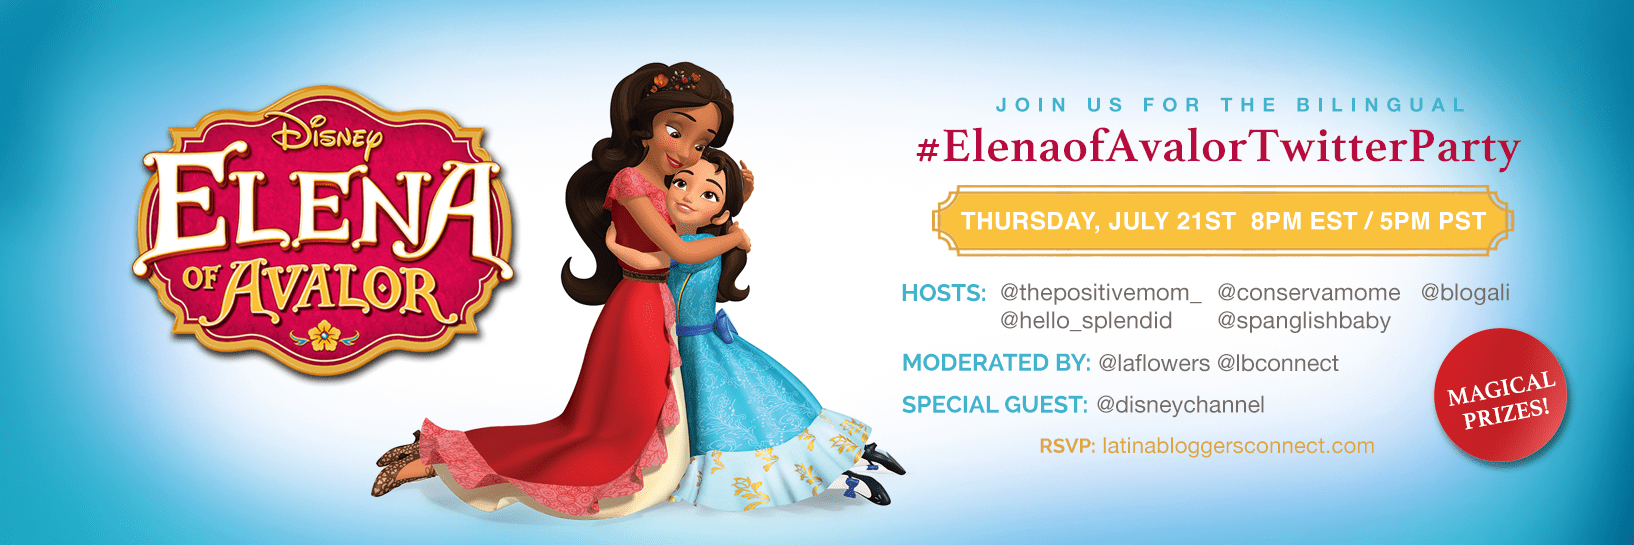 Twitter Party Alert!! #ElenaofAvalor Twitter Party, sponsored by Disney Channel